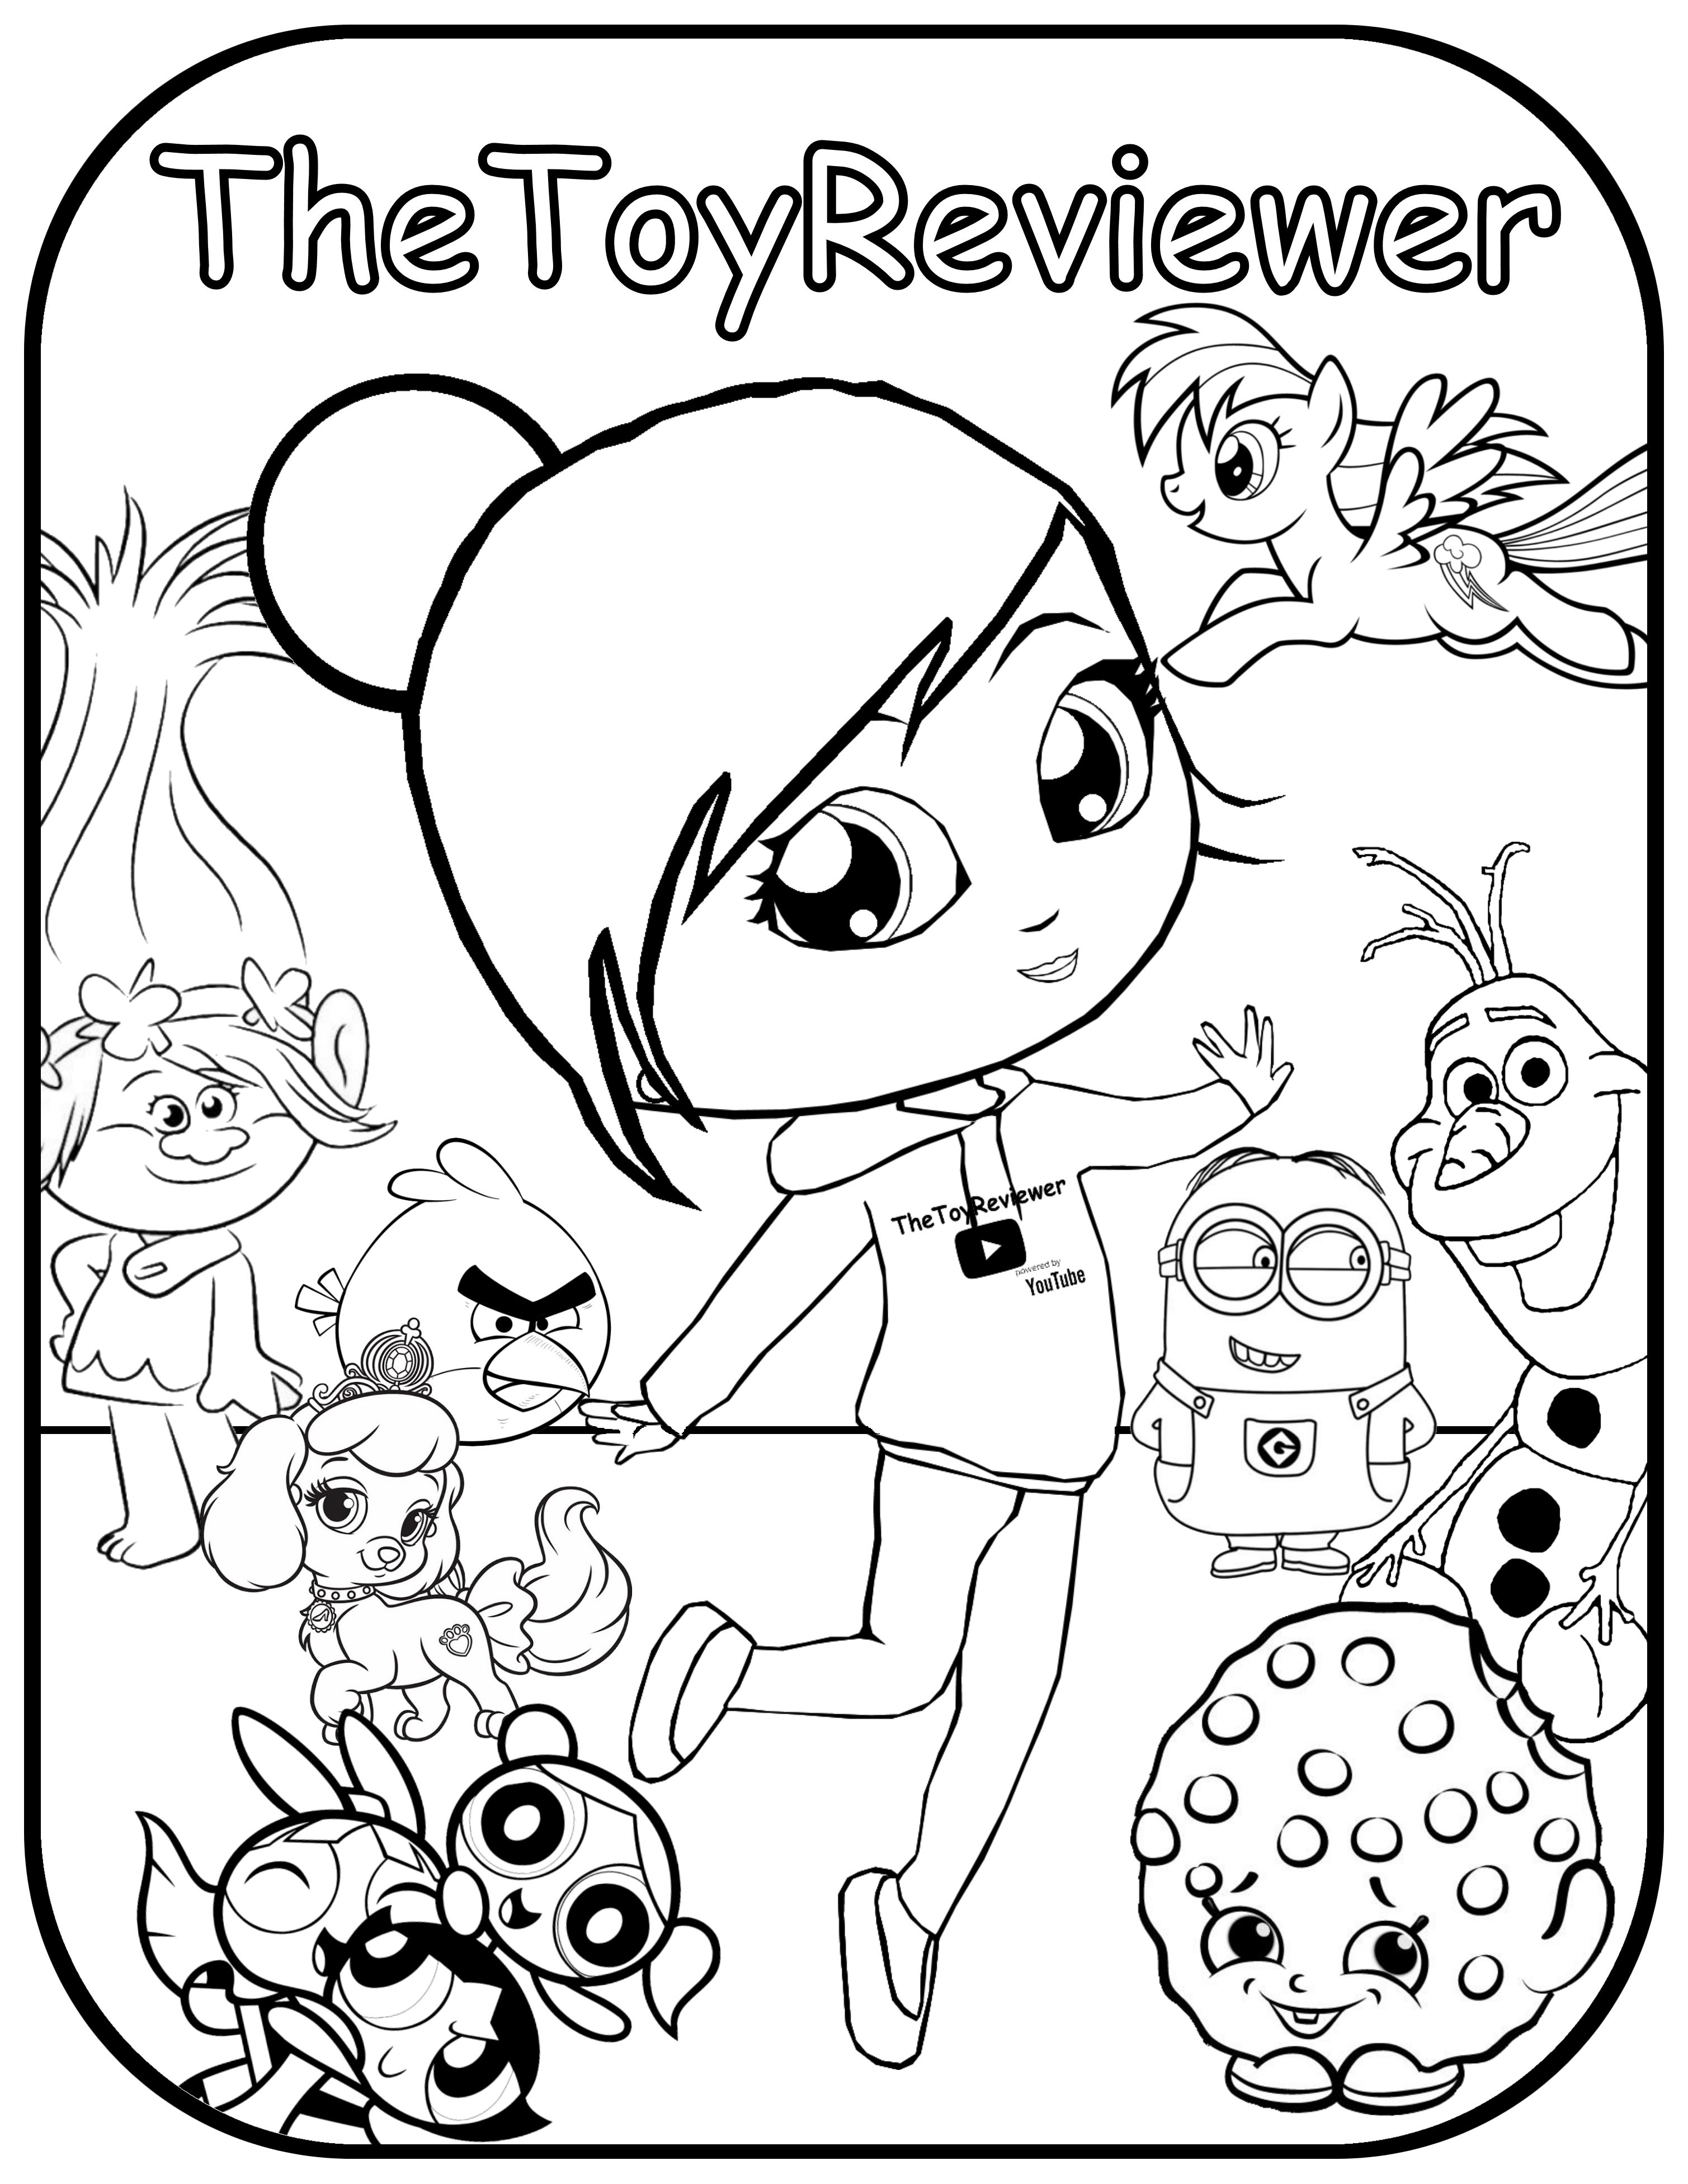 Want Your Very Own TheToyReviewer Coloring Book Page Just Click